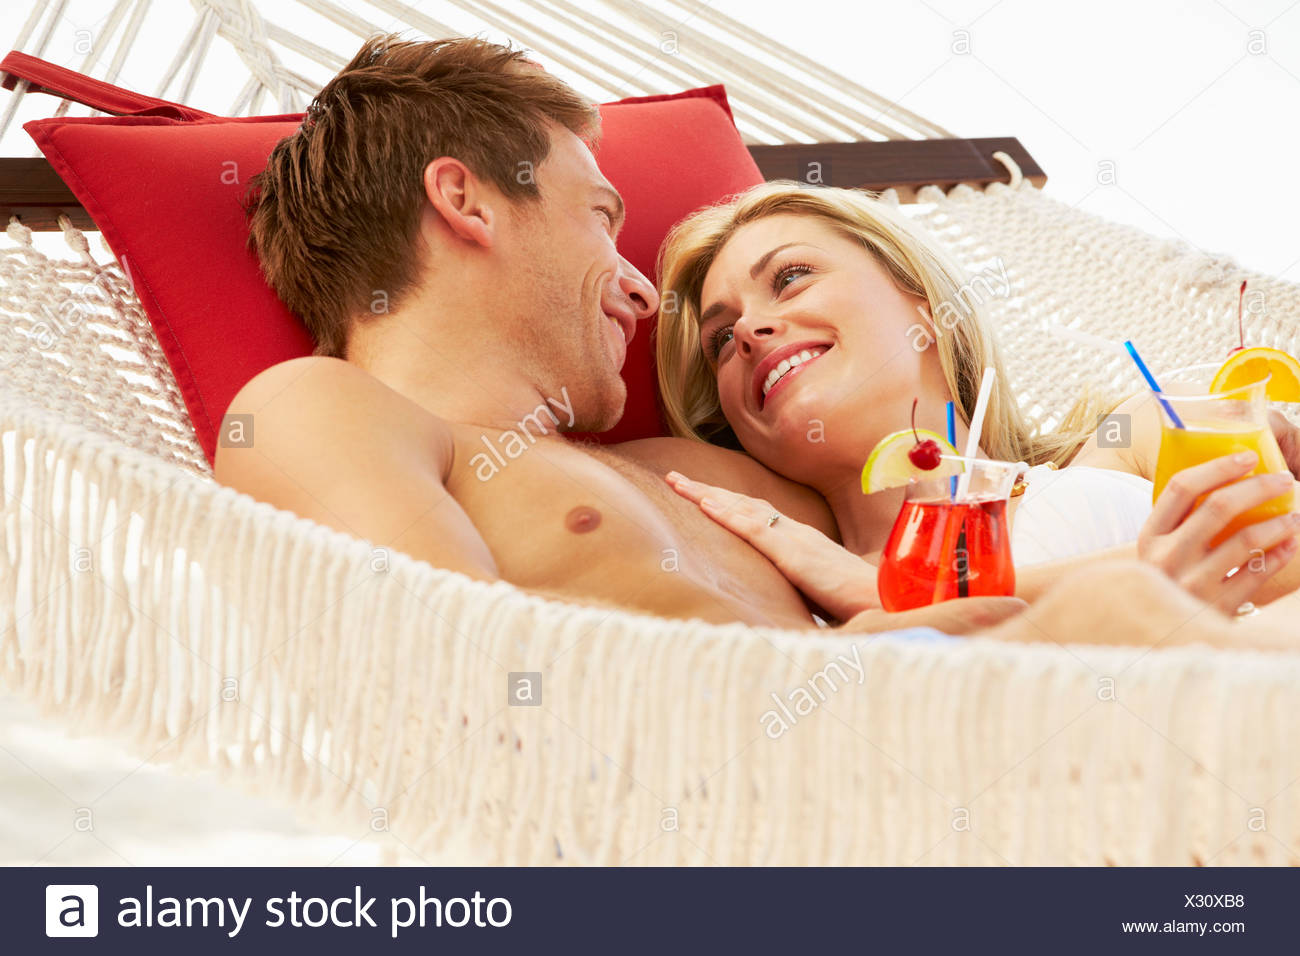 Romantic Couple Relaxing In Beach Hammock - Stock Image